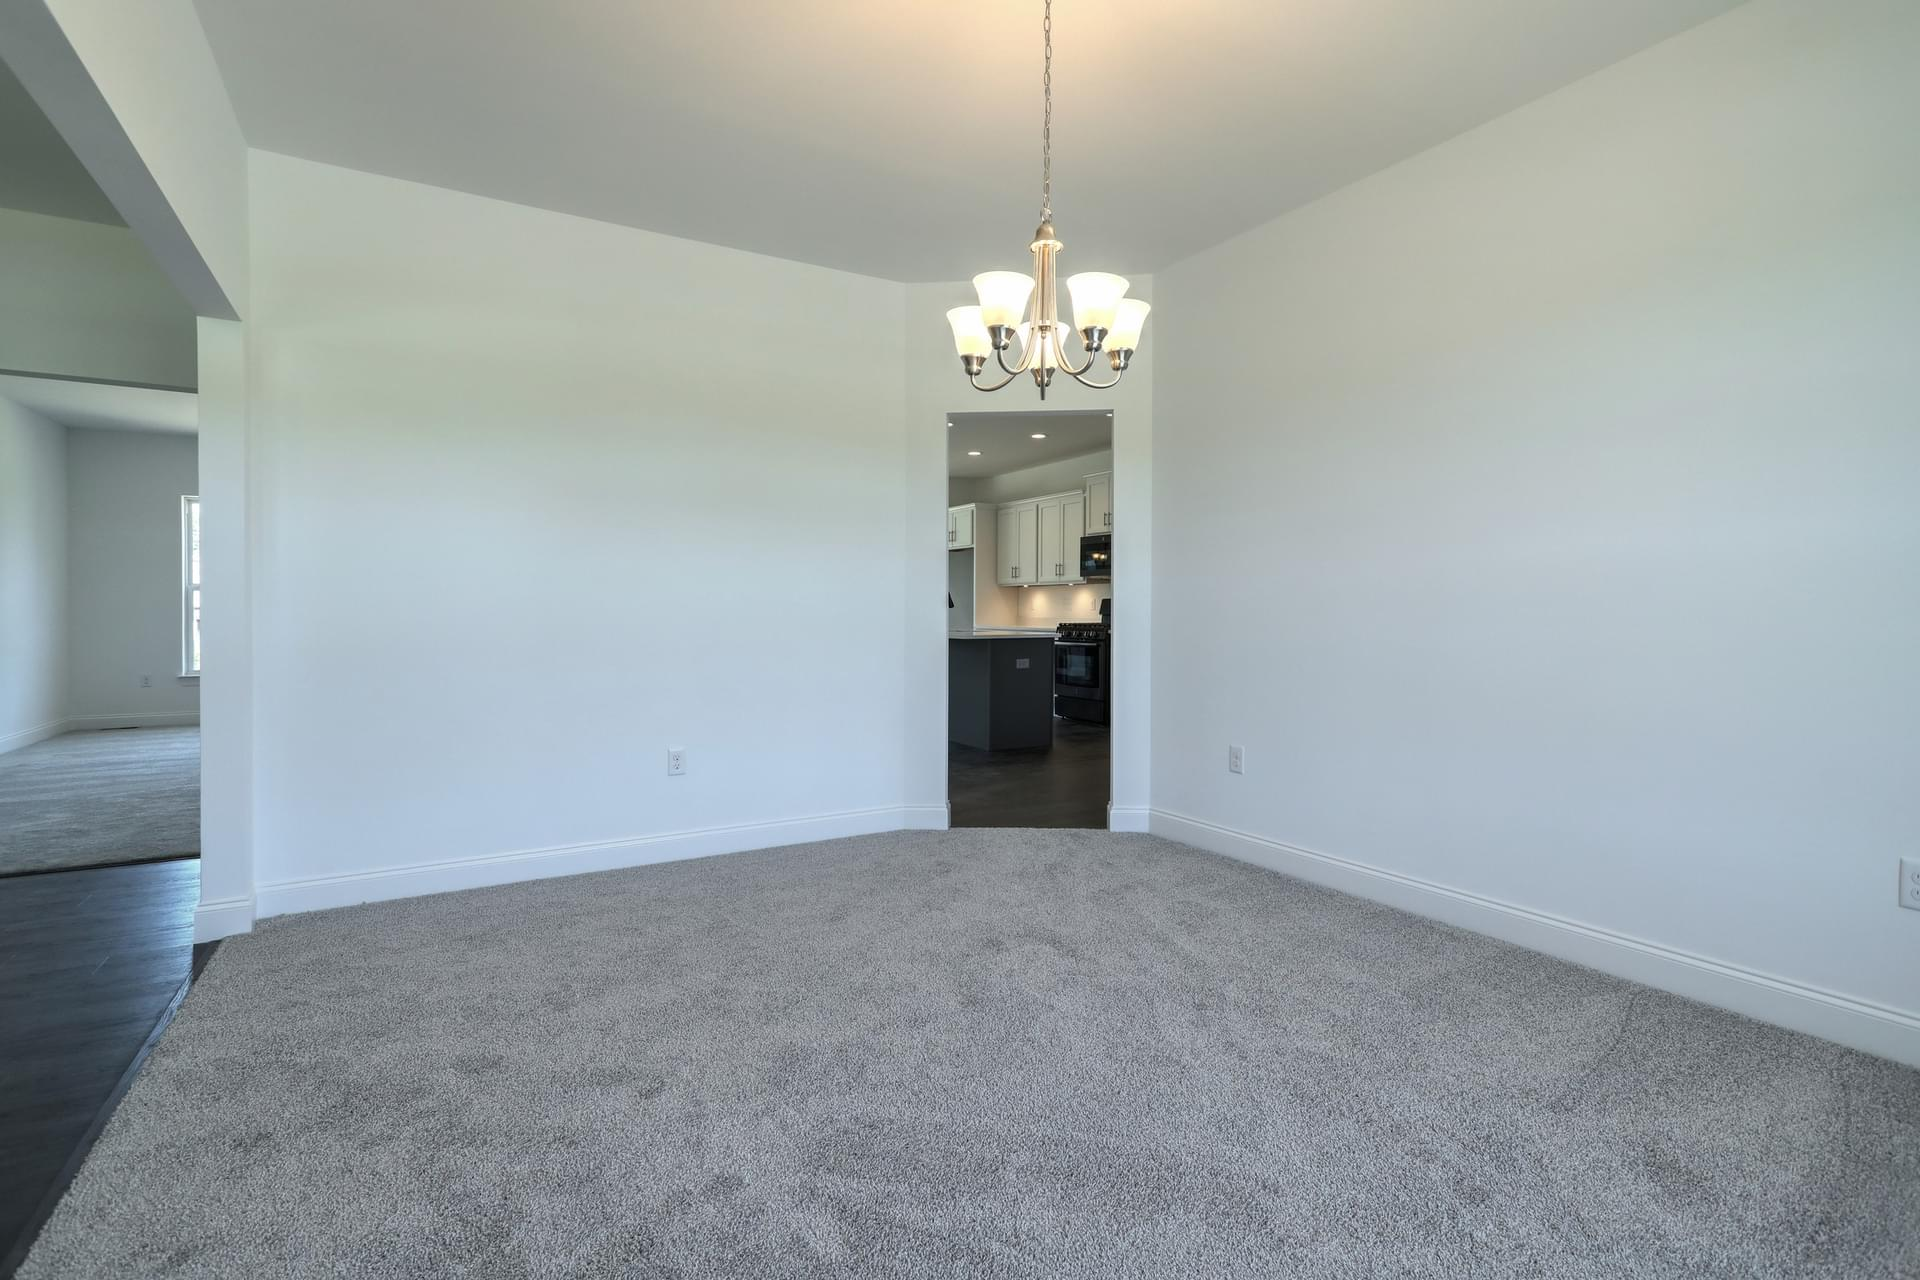 3br New Home in Bellefonte, PA